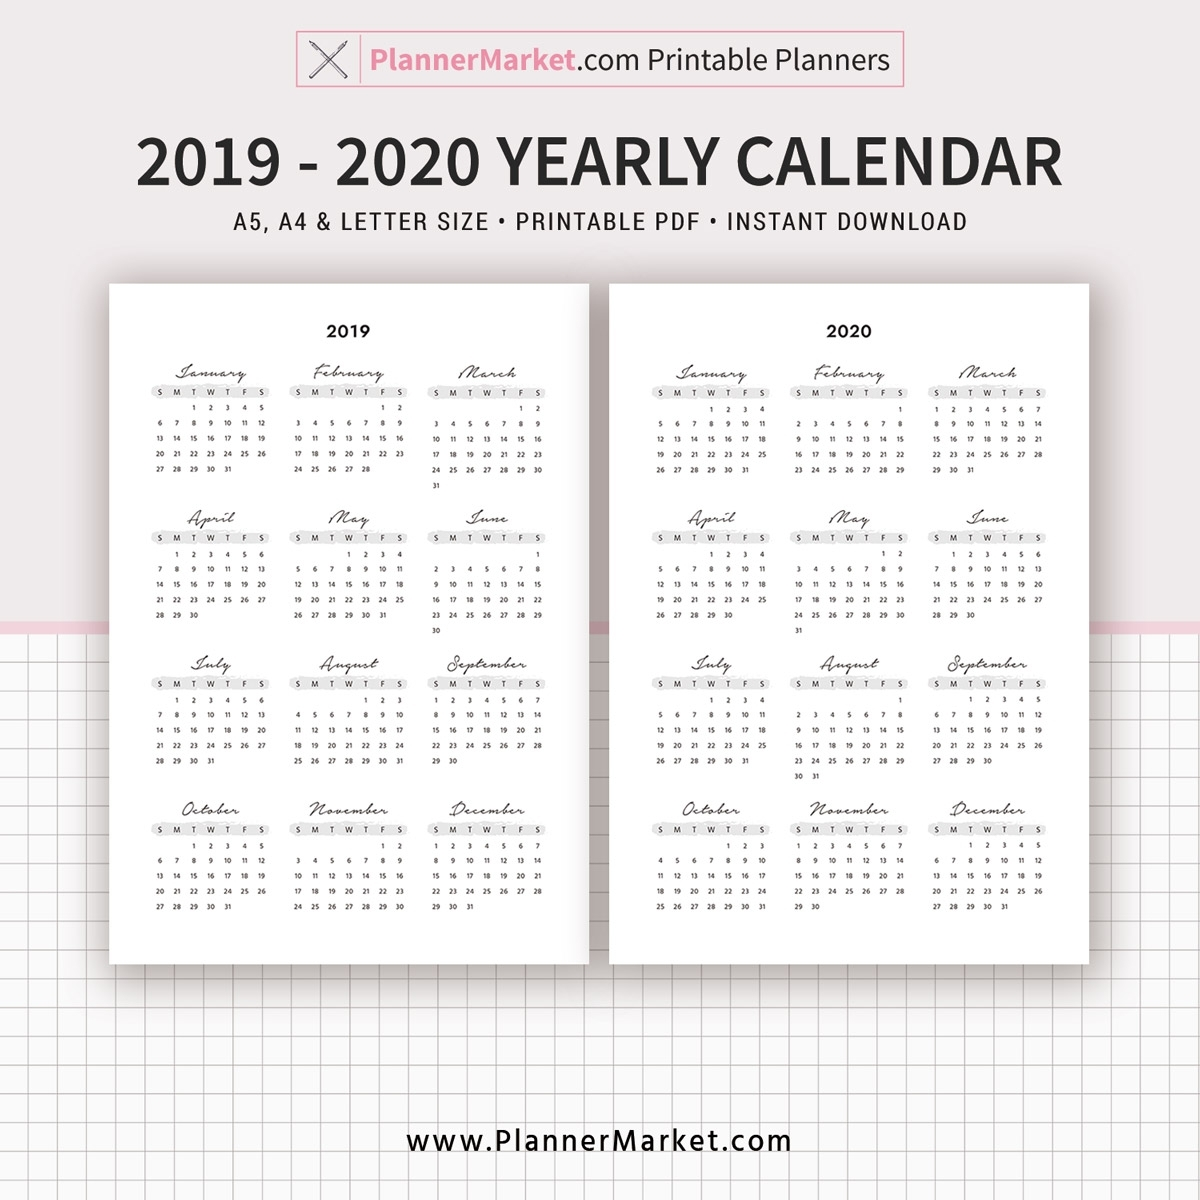 2019 Calendar, 2020 Calendar, Yearly Calendar, Filofax A5, A4 pertaining to A4 Yearly Calendars For 2019 And 2020